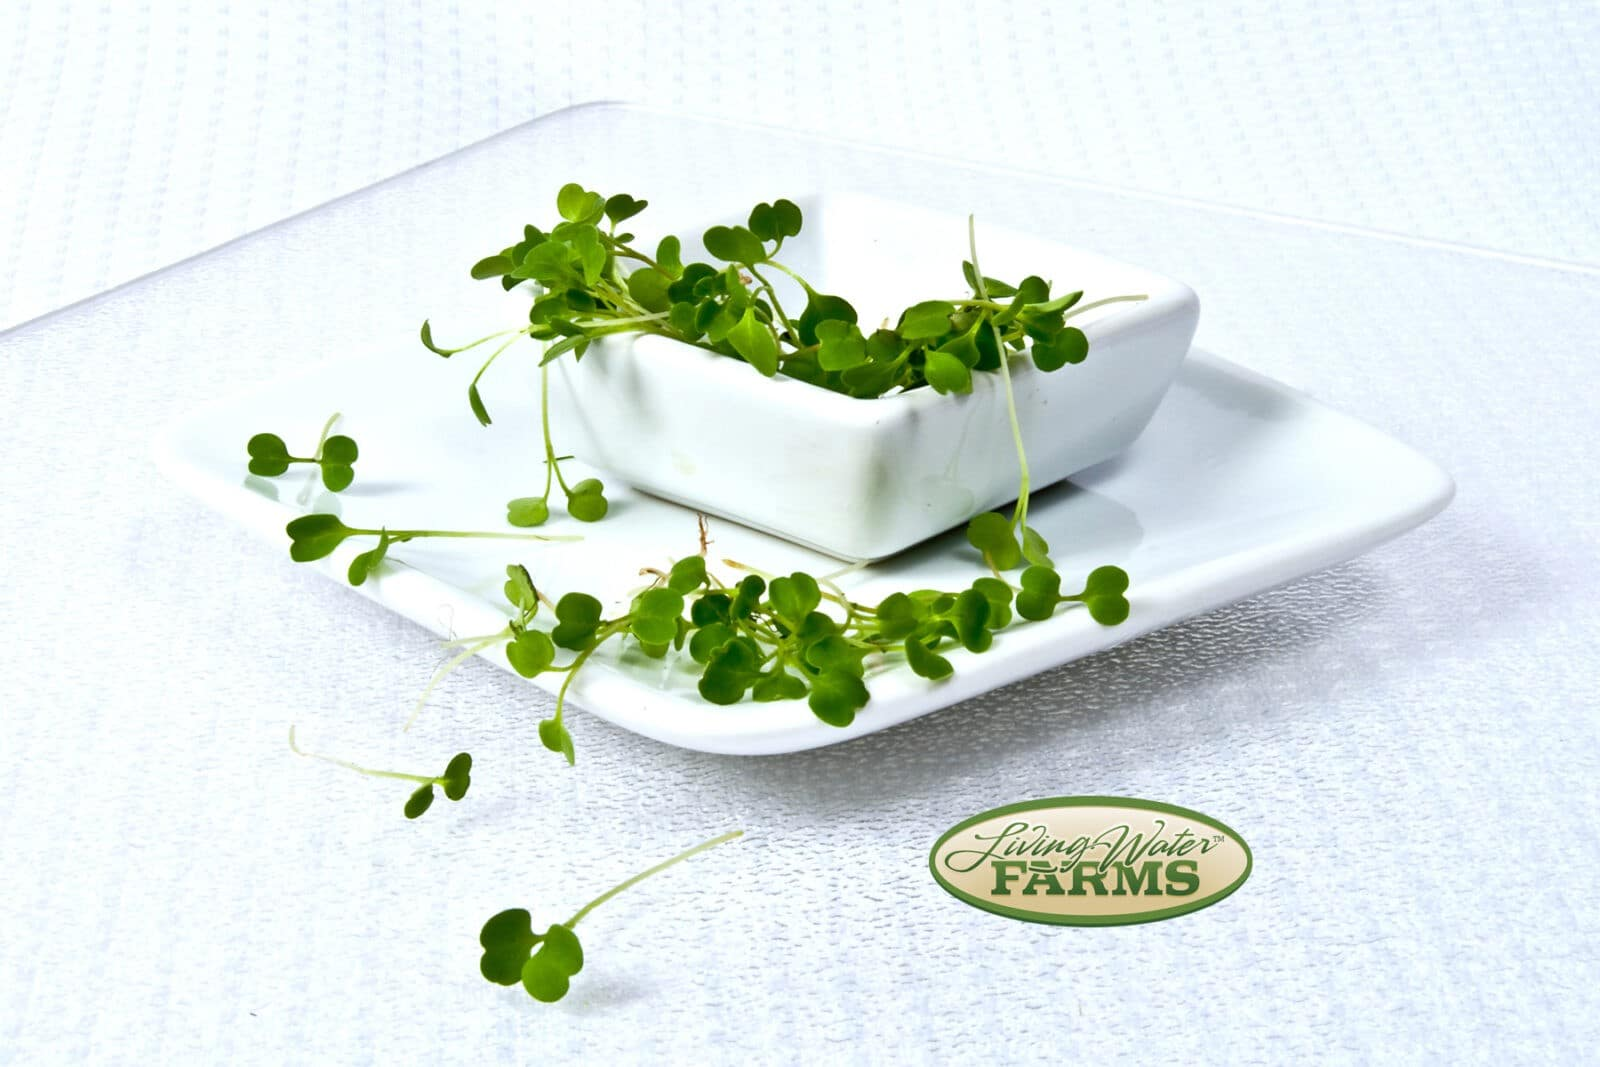 Living Water Farms Micro Greens Arugula